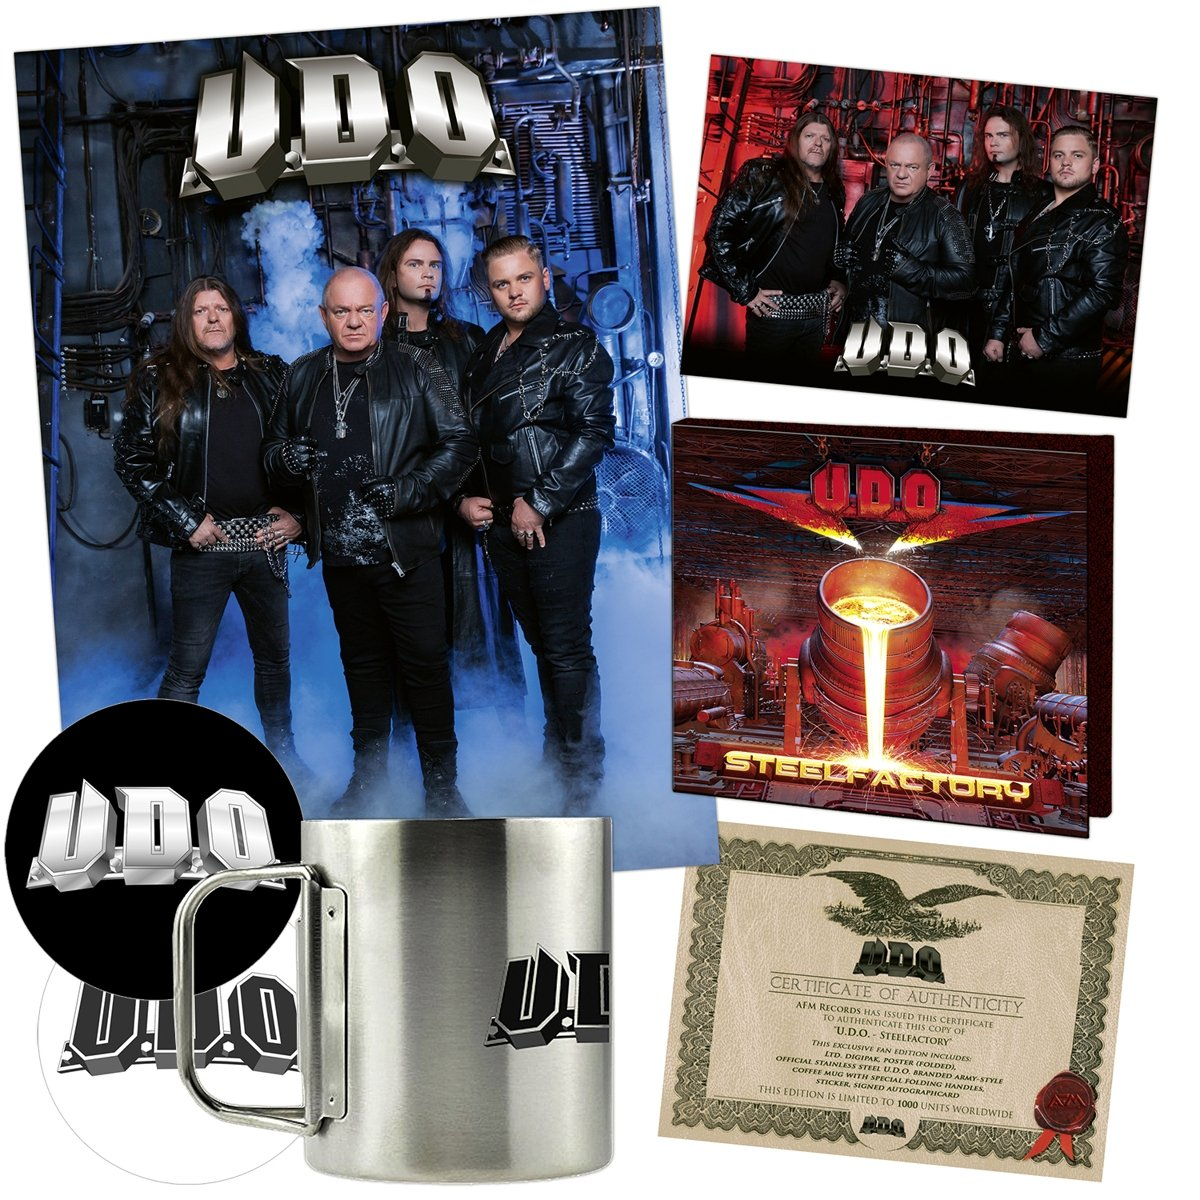 CD : U.D.O. - Steelfactory (Limited Edition, Boxed Set, Poster, Stickers, Autographed / Star Signed)